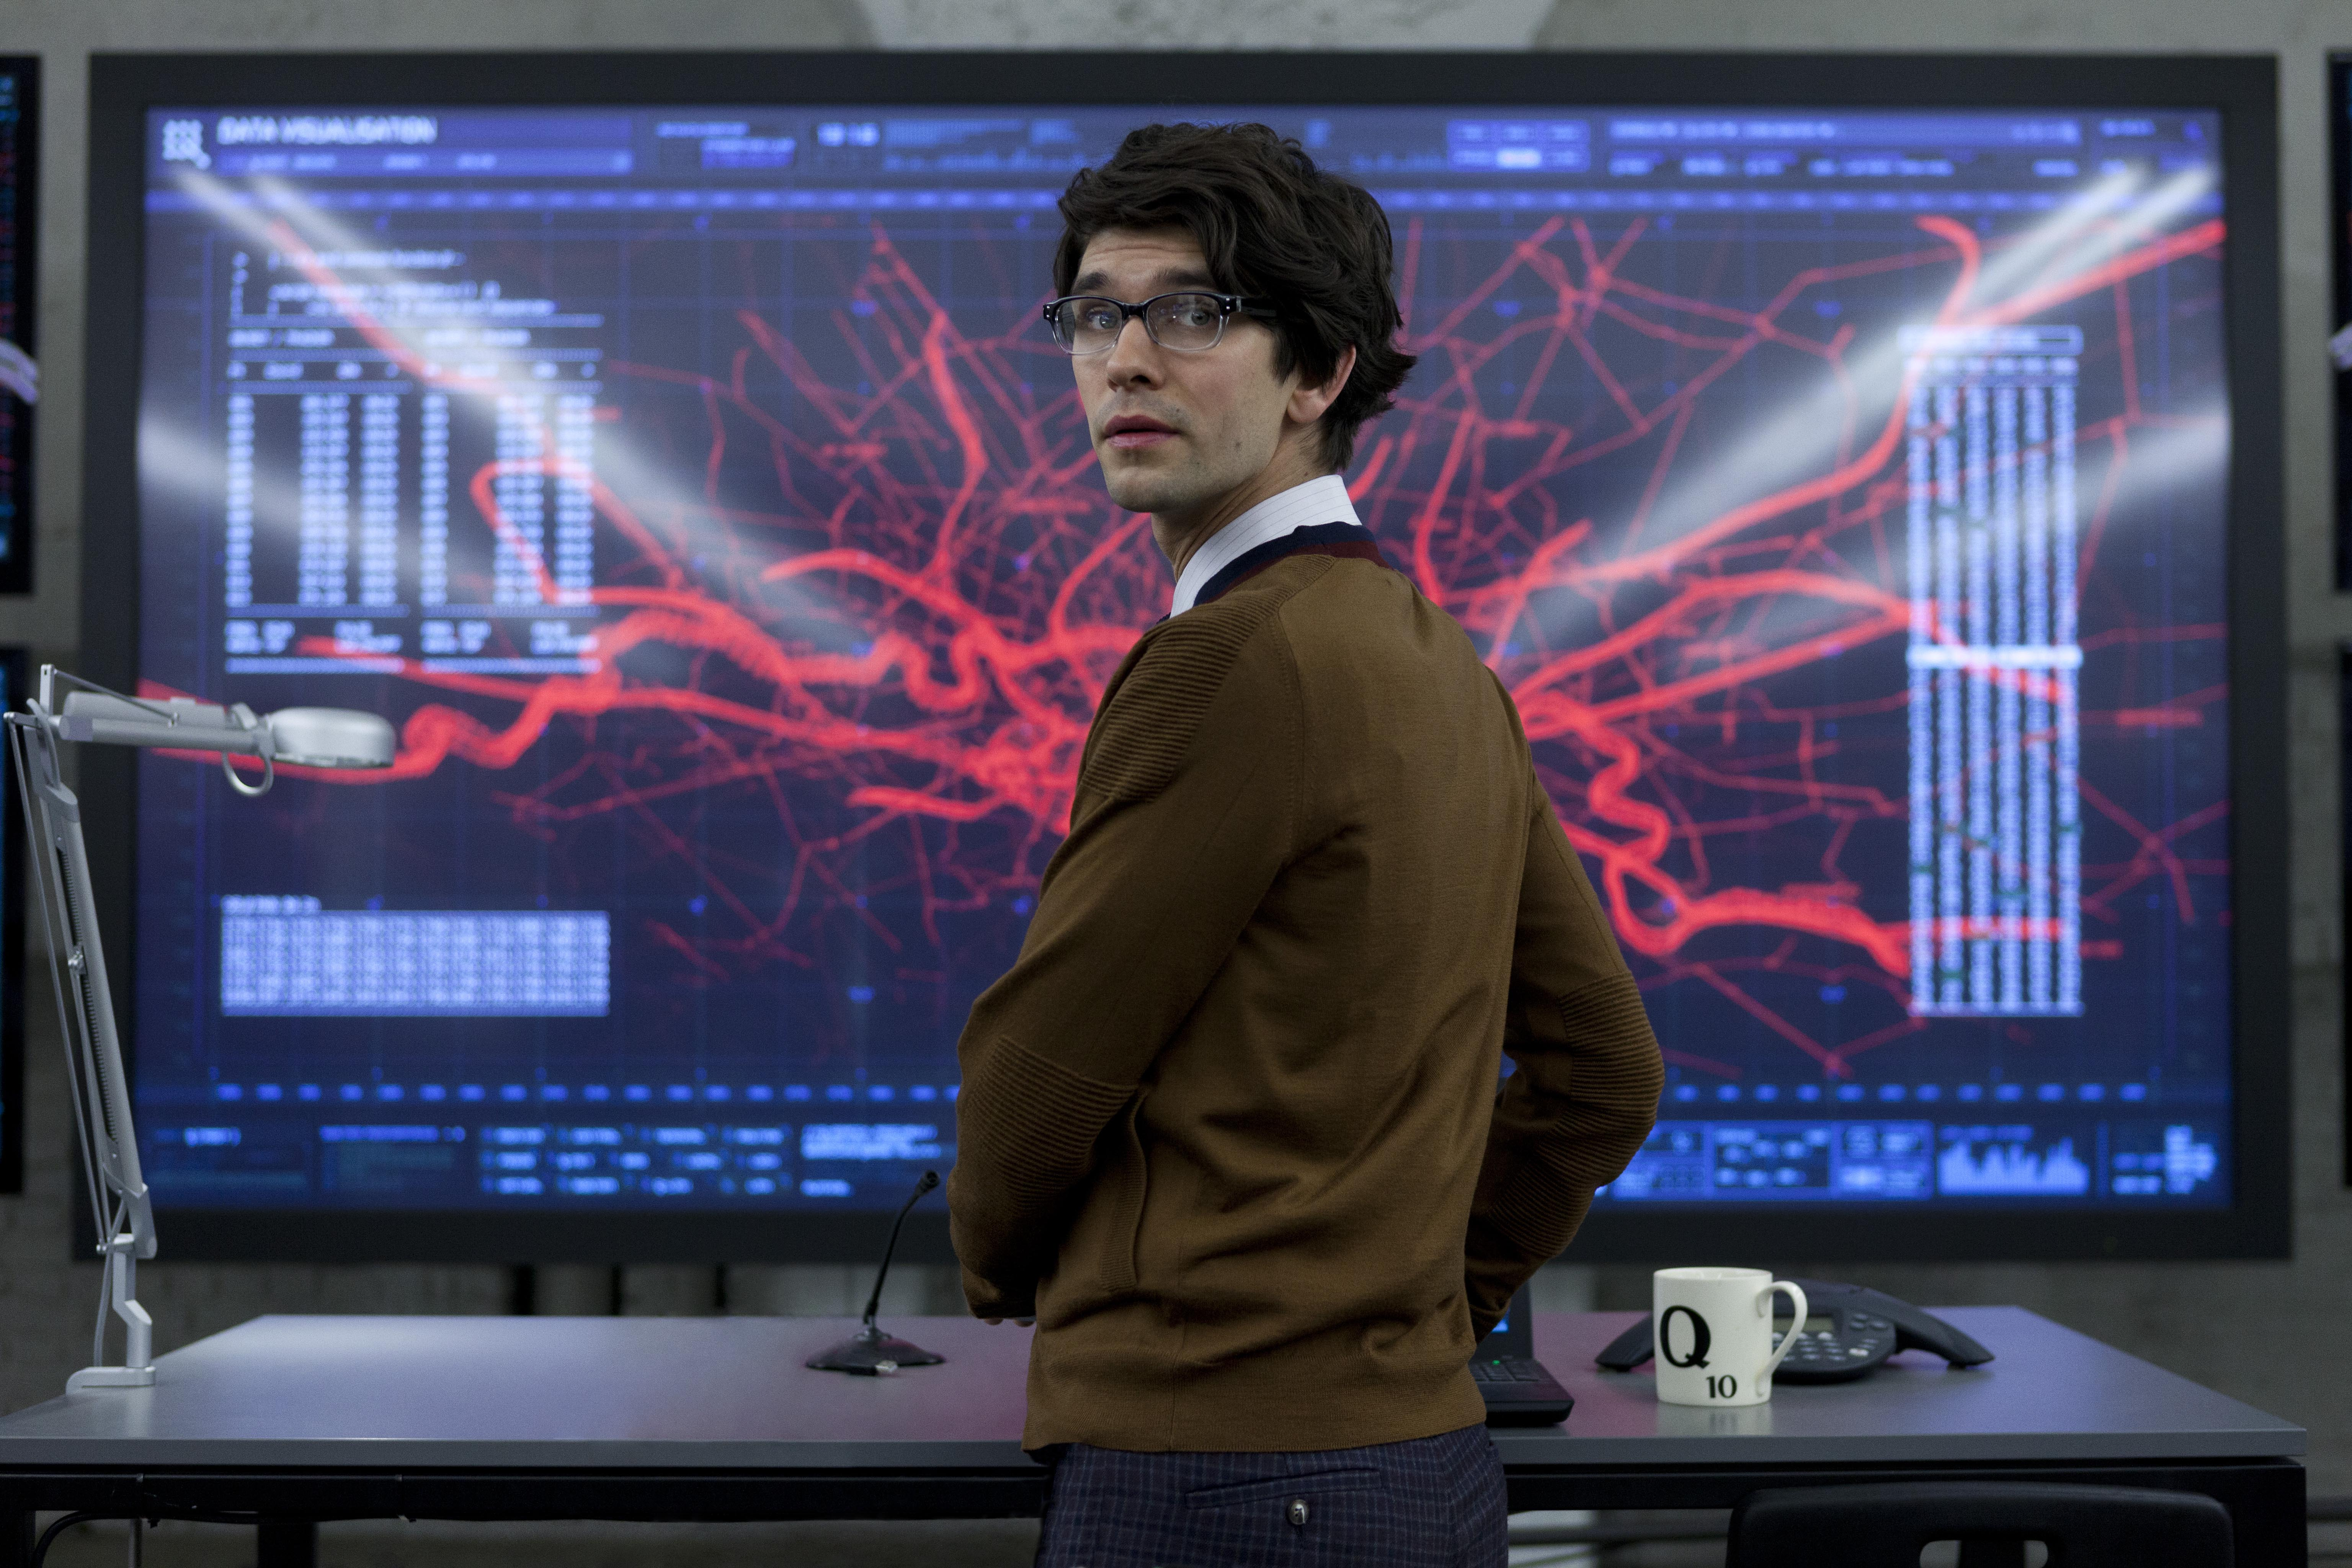 Ben Whishaw confirms he will be back in Bond 25 but his role is still shrouded in secrecy